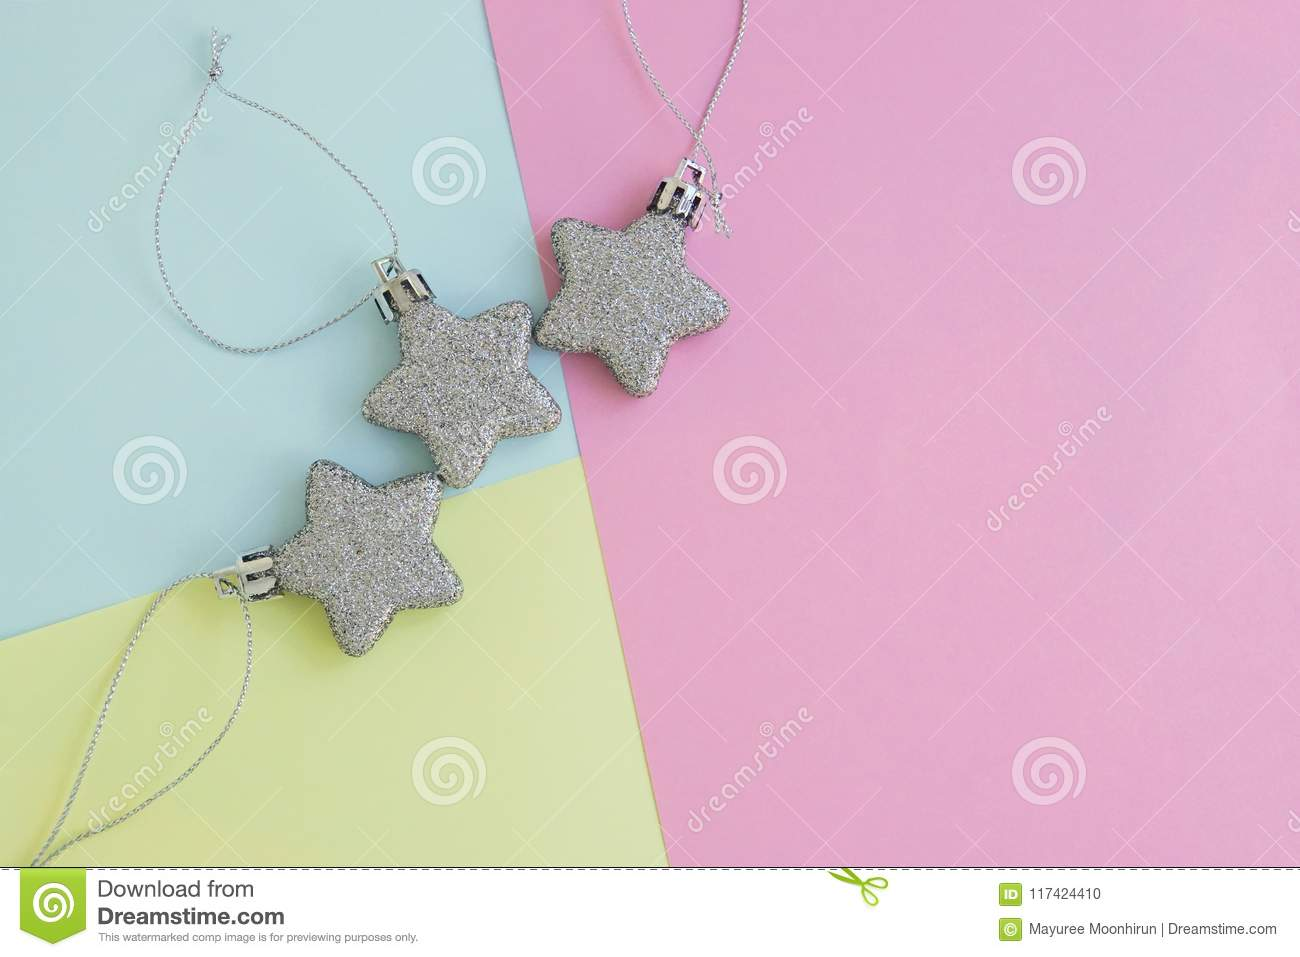 Background of glitter star on blue, pink and yellow colour pastel sheet